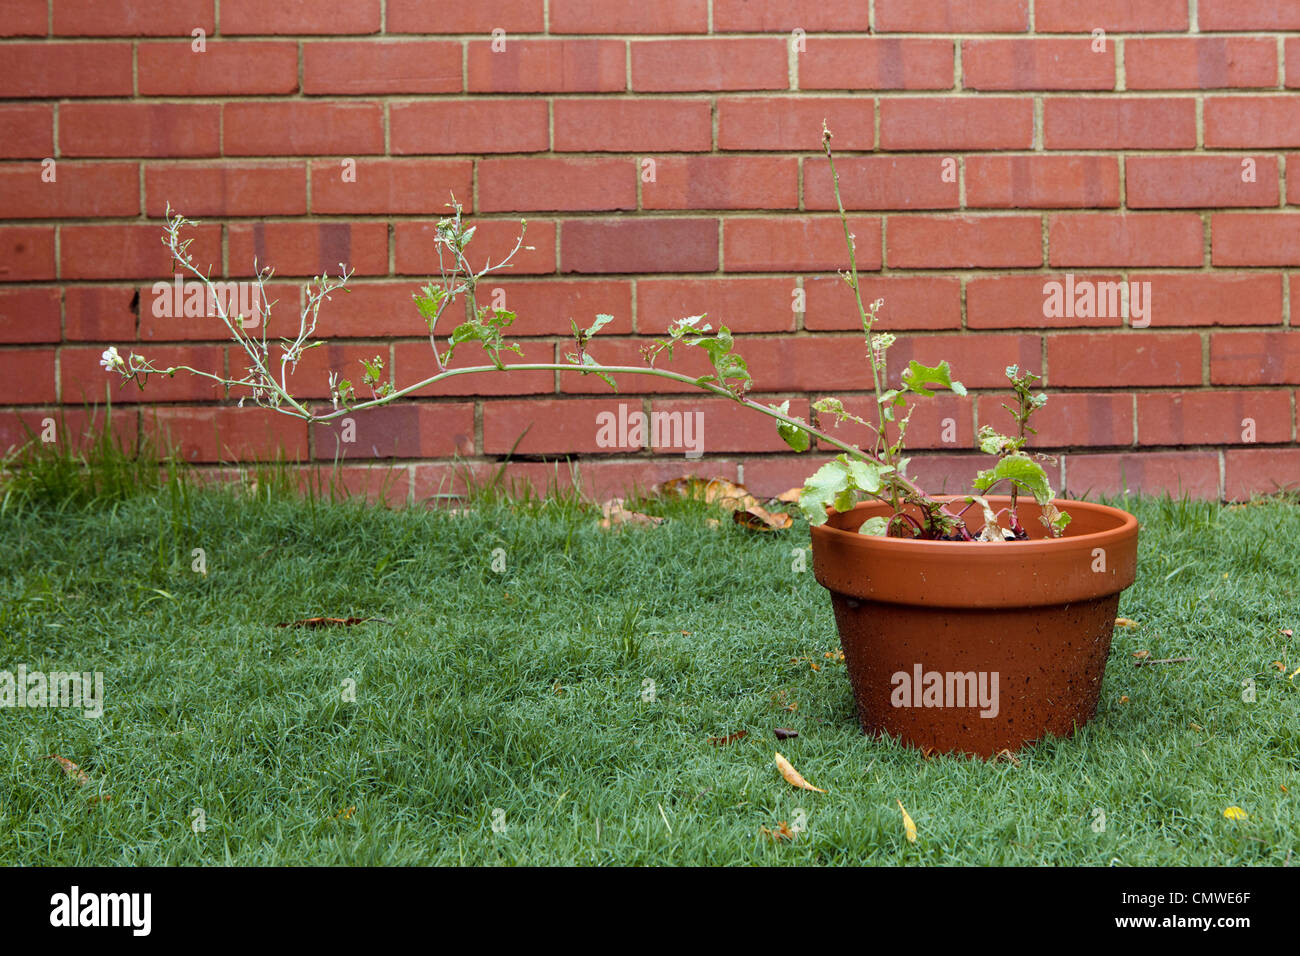 Radish plant in terracotta pot that has bolted and gone to seed to produce edible pods. - Stock Image